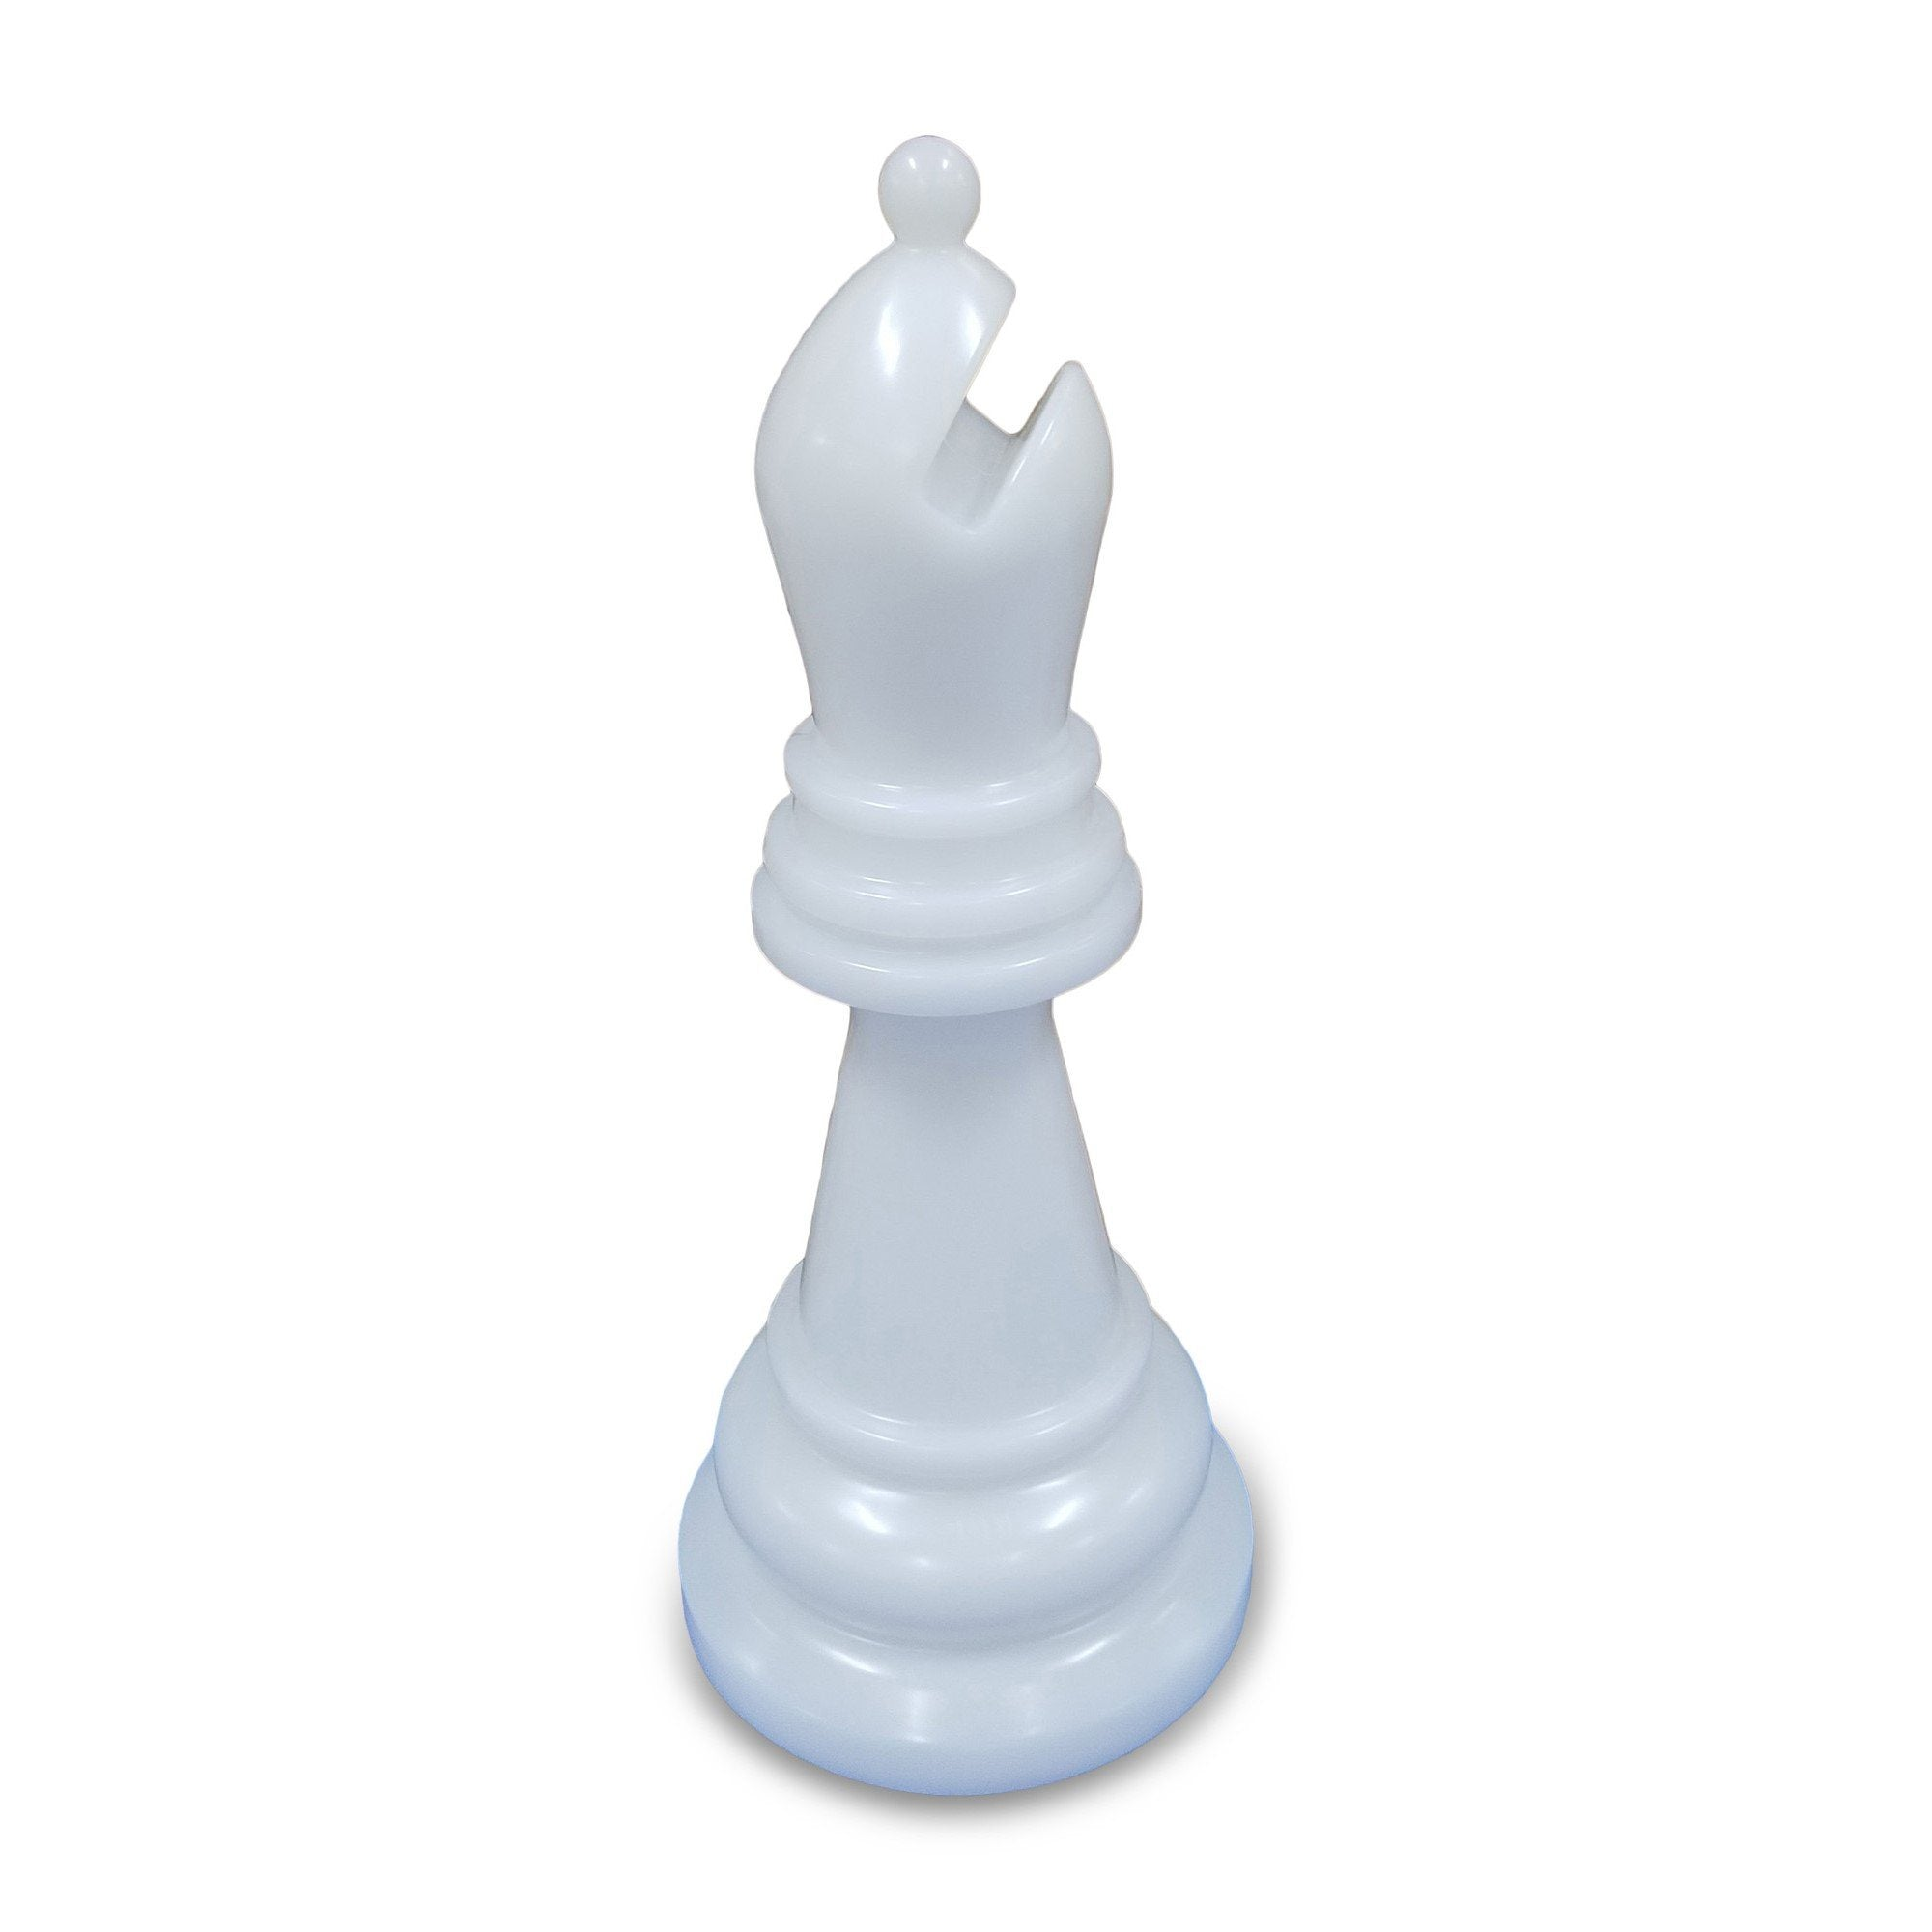 MegaChess 20 Inch Perfect Plastic Bishop Giant Chess Piece |  | MegaChess.com